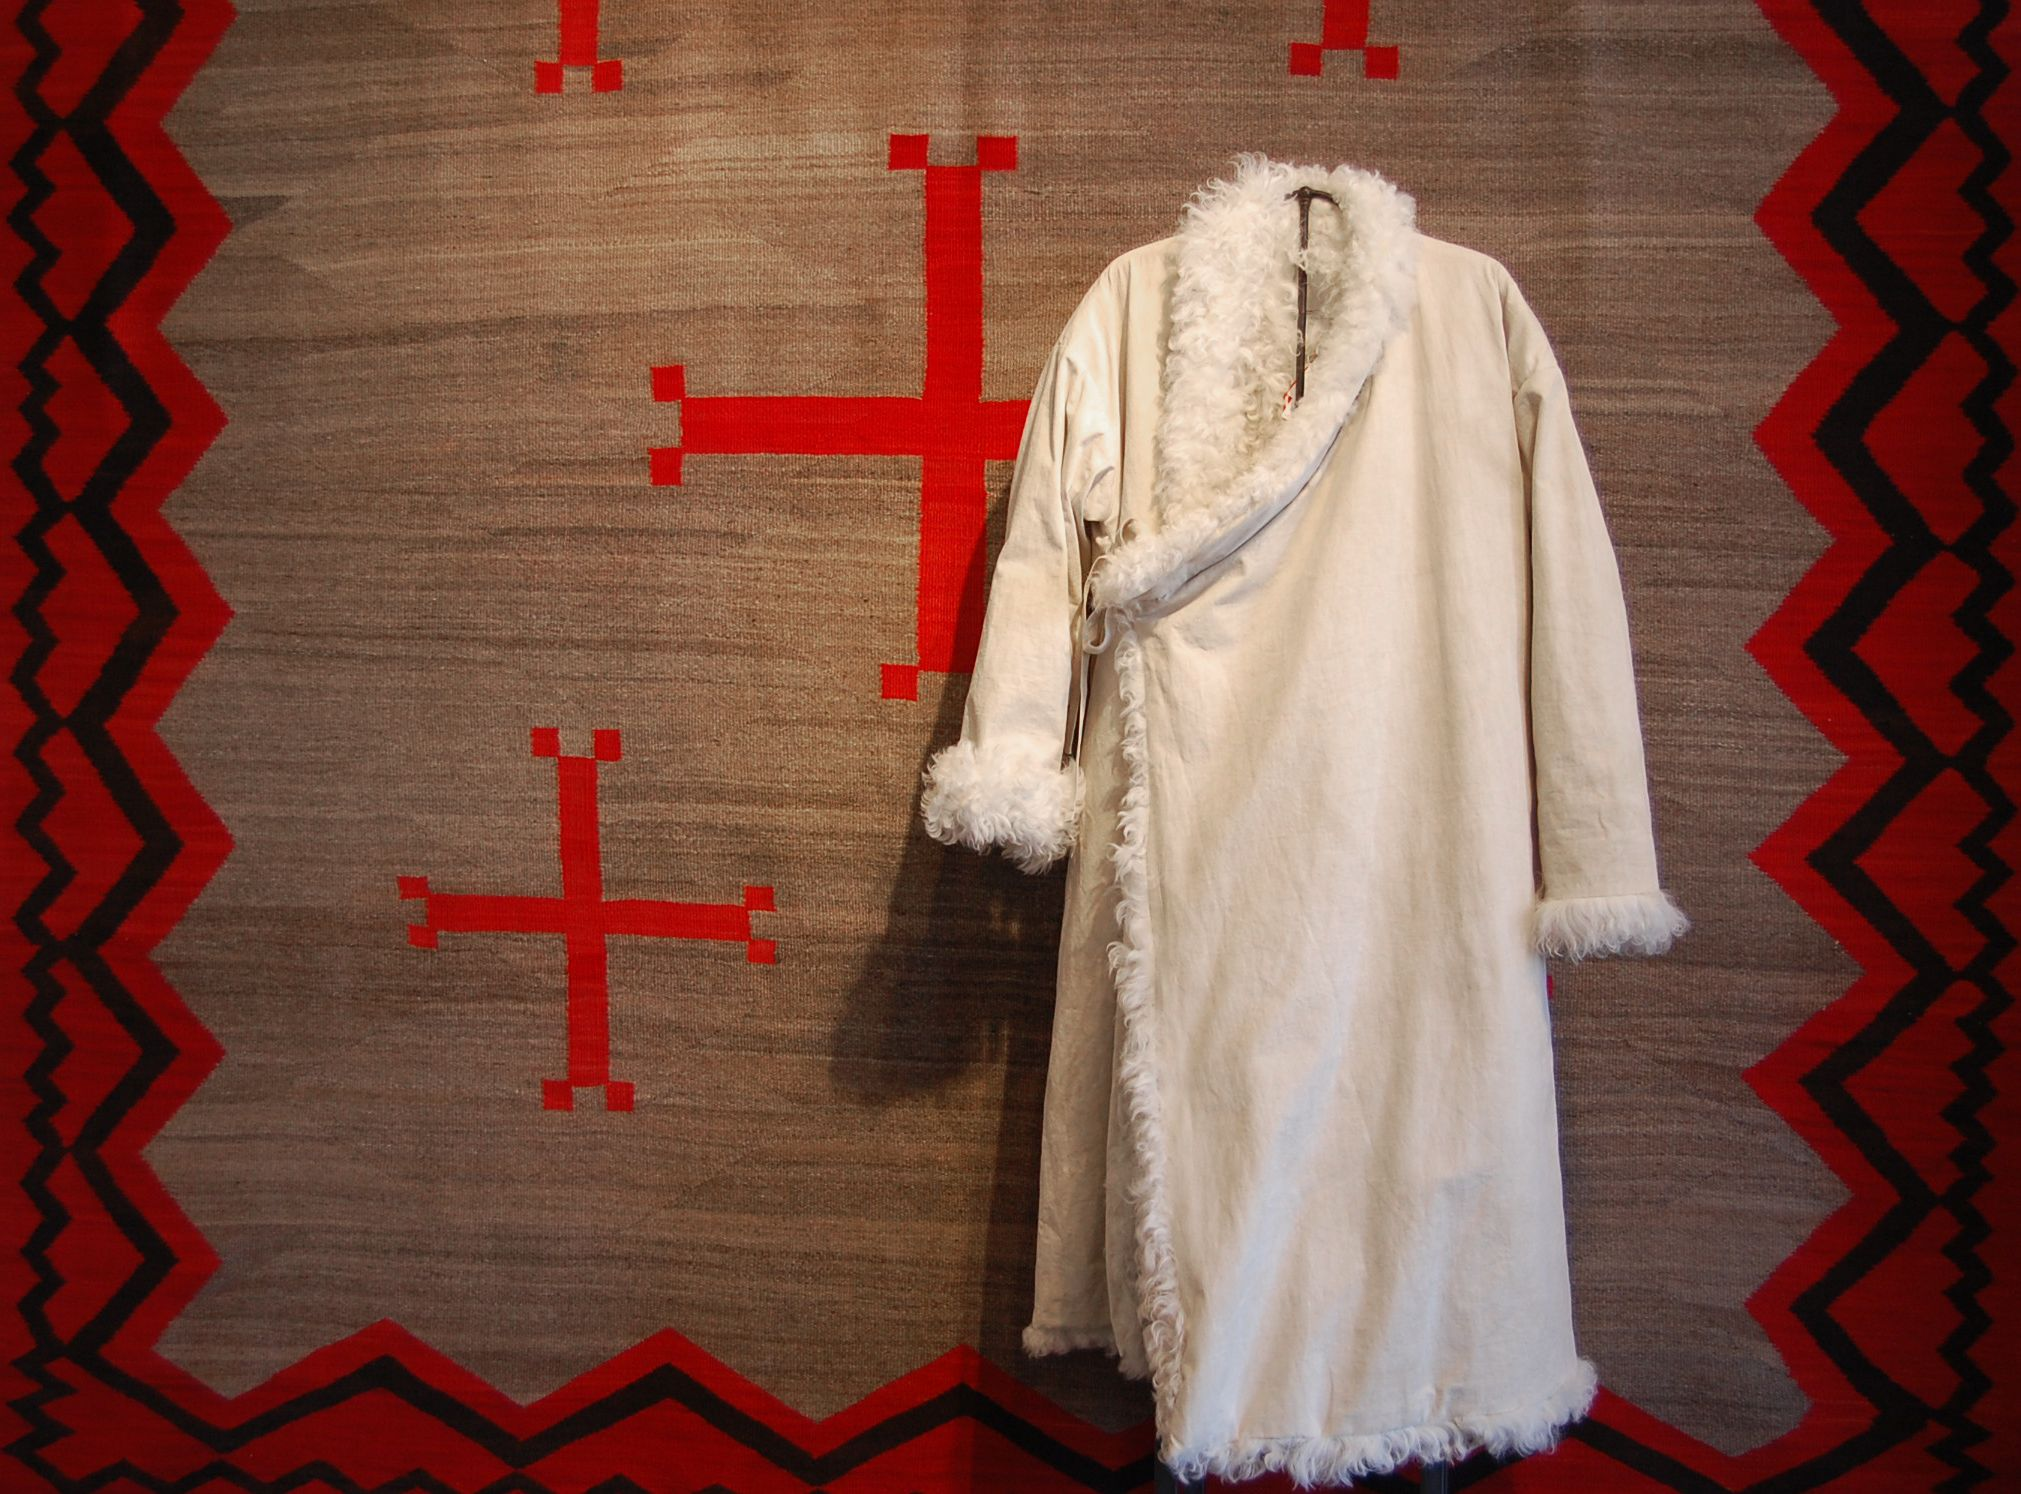 Navajo Ganado textile c. 1905 with the Lhamo Robe